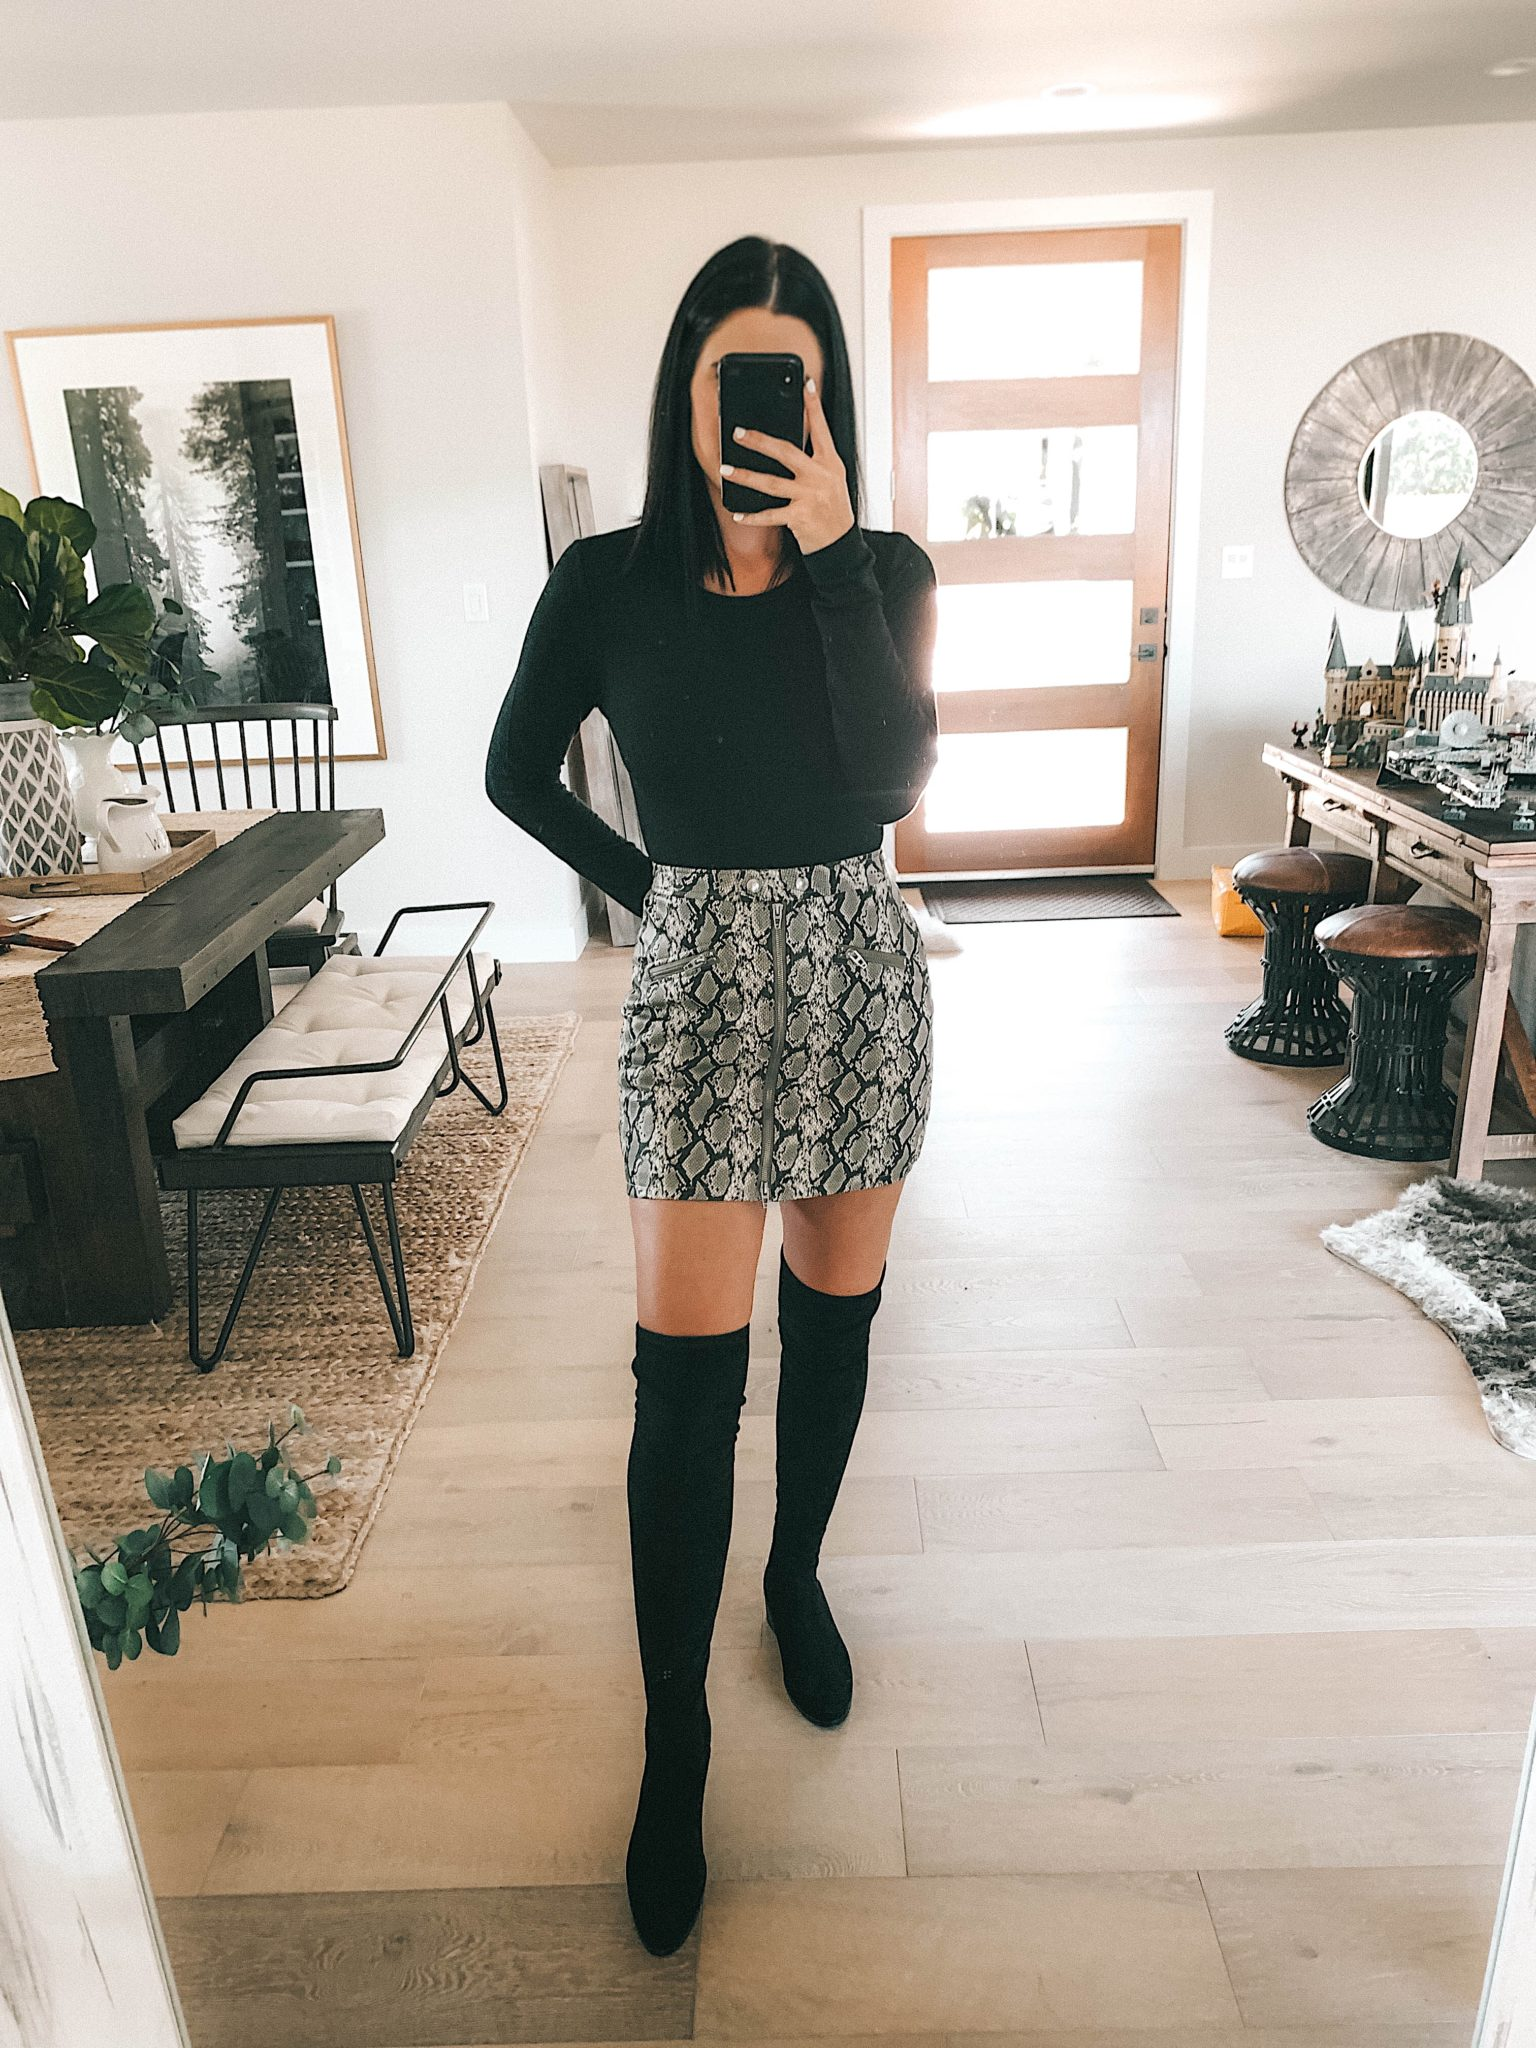 Create a Capsule Wardrobe with Nordstrom Anniversary Sale Pieces by popular Austin fashion blog, Dressed to Kill: image of a woman standing in her house and wearing a Nordstrom Signature Cashmere Sweater, BlankNYC Snakeskin Mini Skirt and Steve Madden Over the Knee Boots.